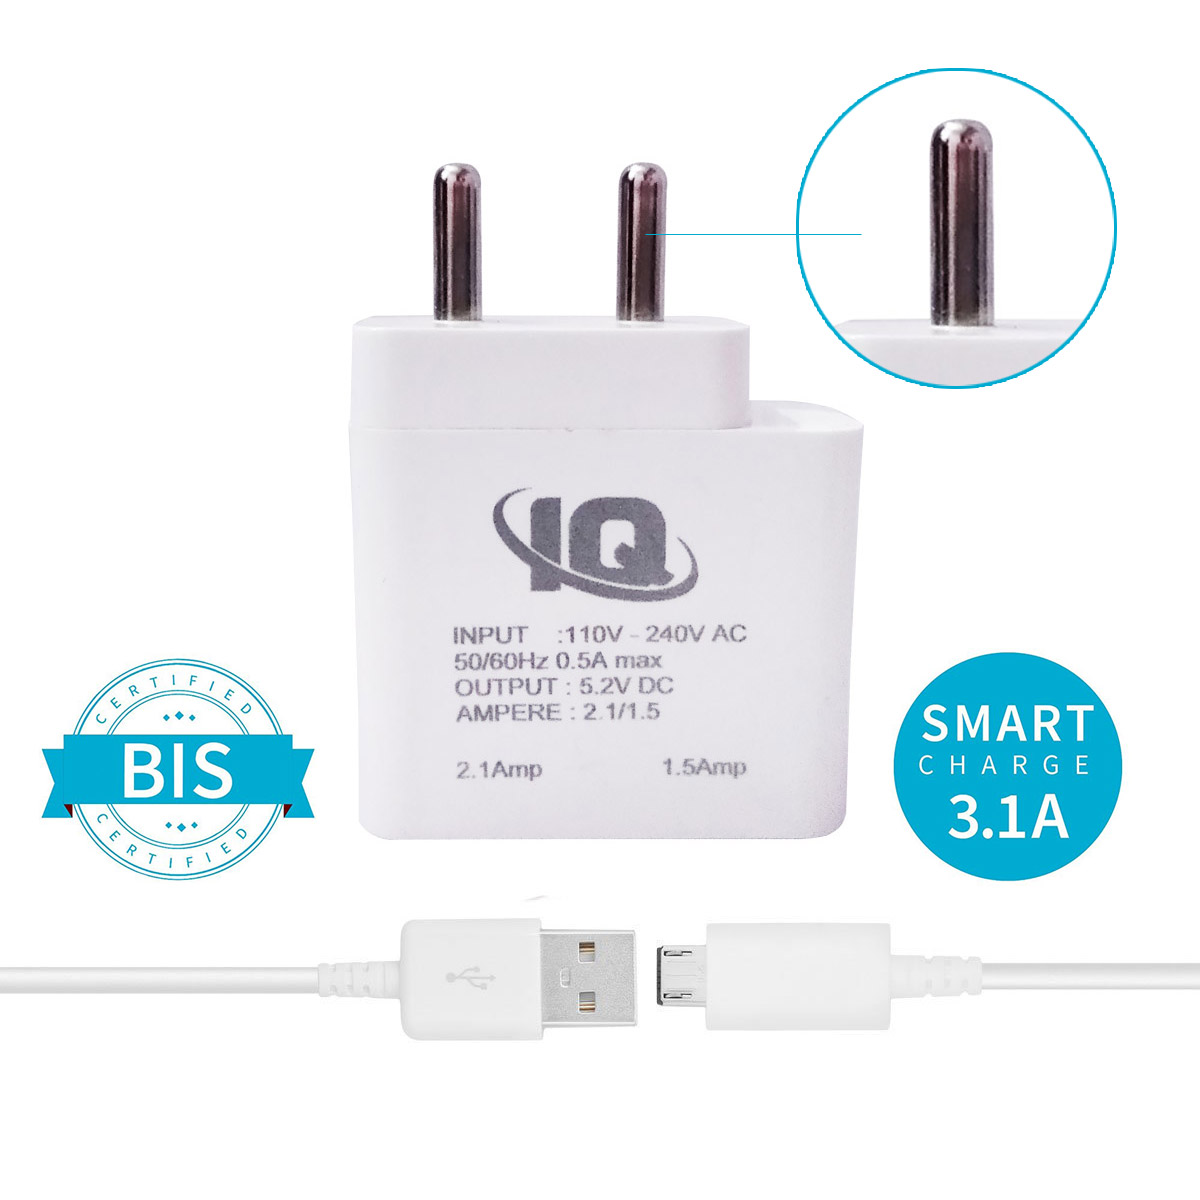 sublicart2 Redmi 4 Prime Supported Wall Charger Made In India,travel Charger ,mobile Charger,dual Port Usb Plug Wall Charger Adapter With 1 Meter Micro Usb Cabl